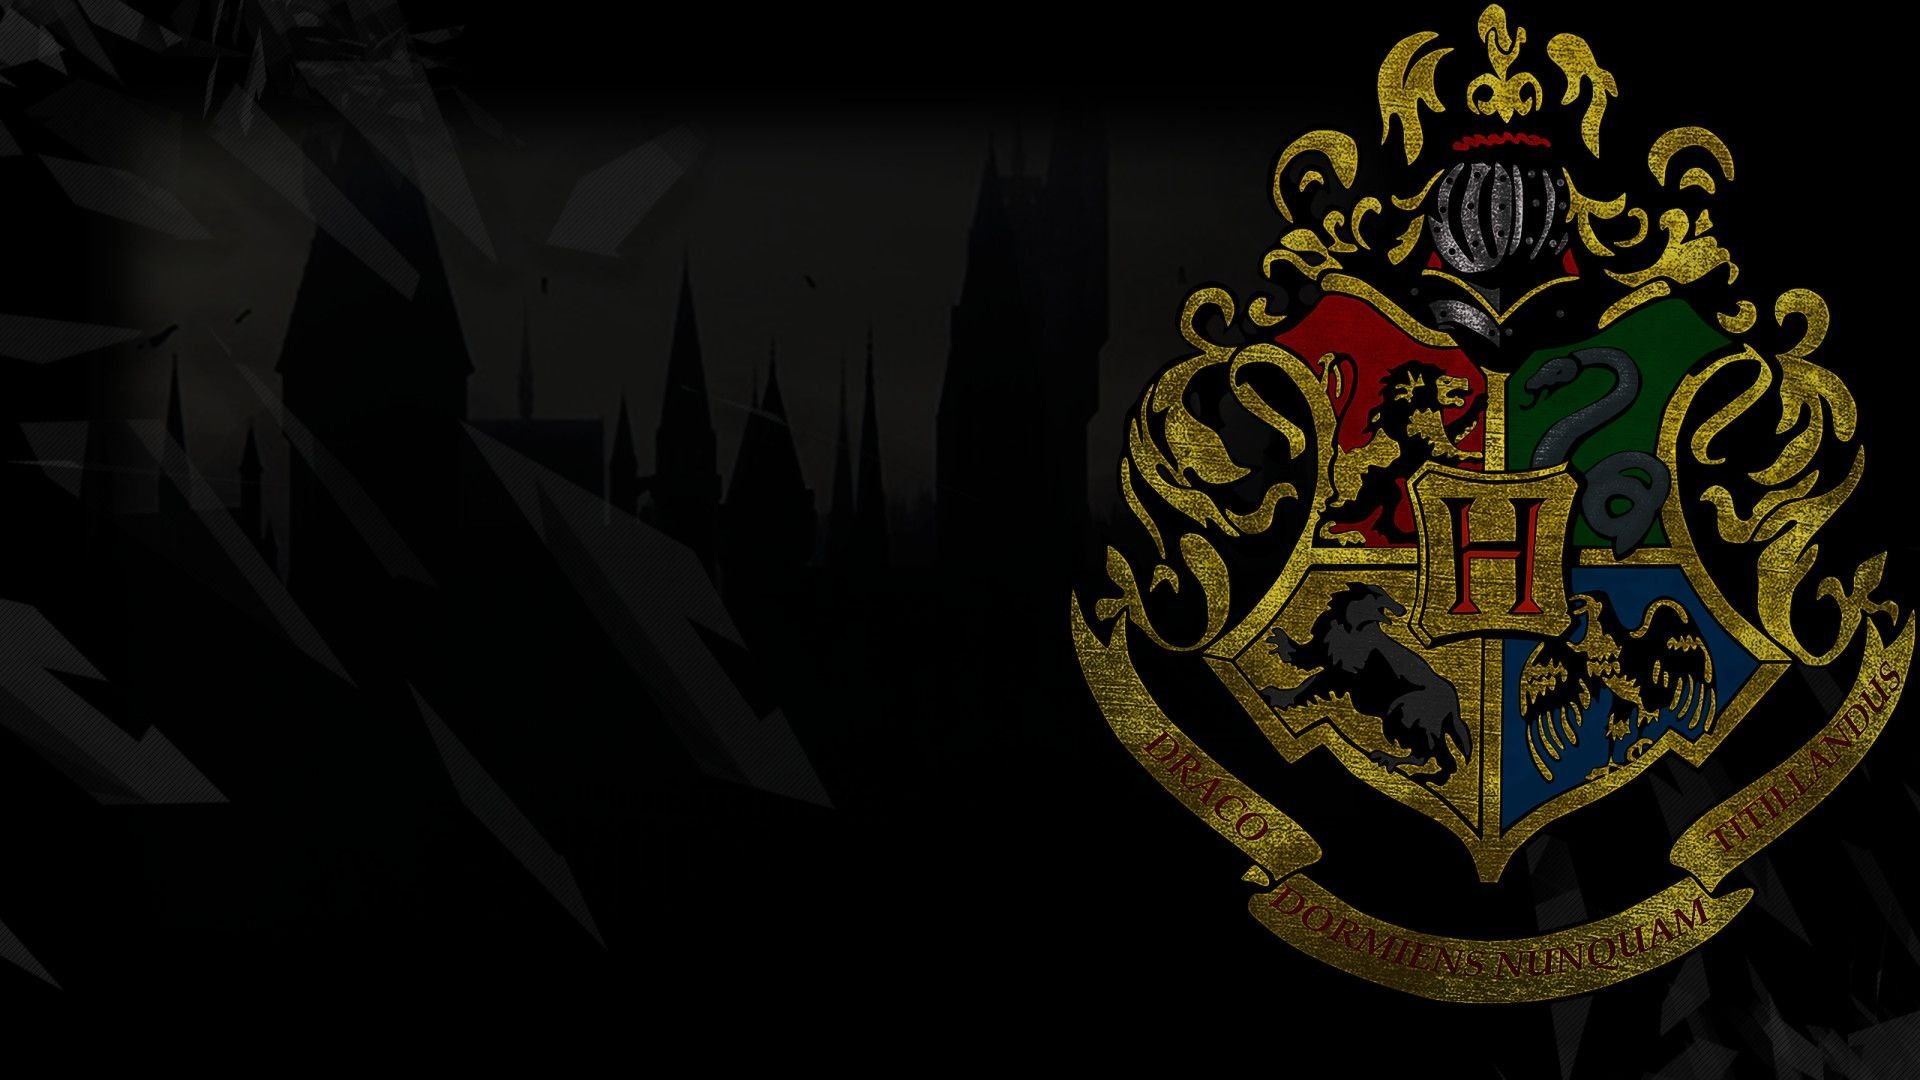 Awesome Computer Wallpaper Harry Potter In 2020 Harry Potter Wallpaper Harry Potter Background Slytherin Wallpaper